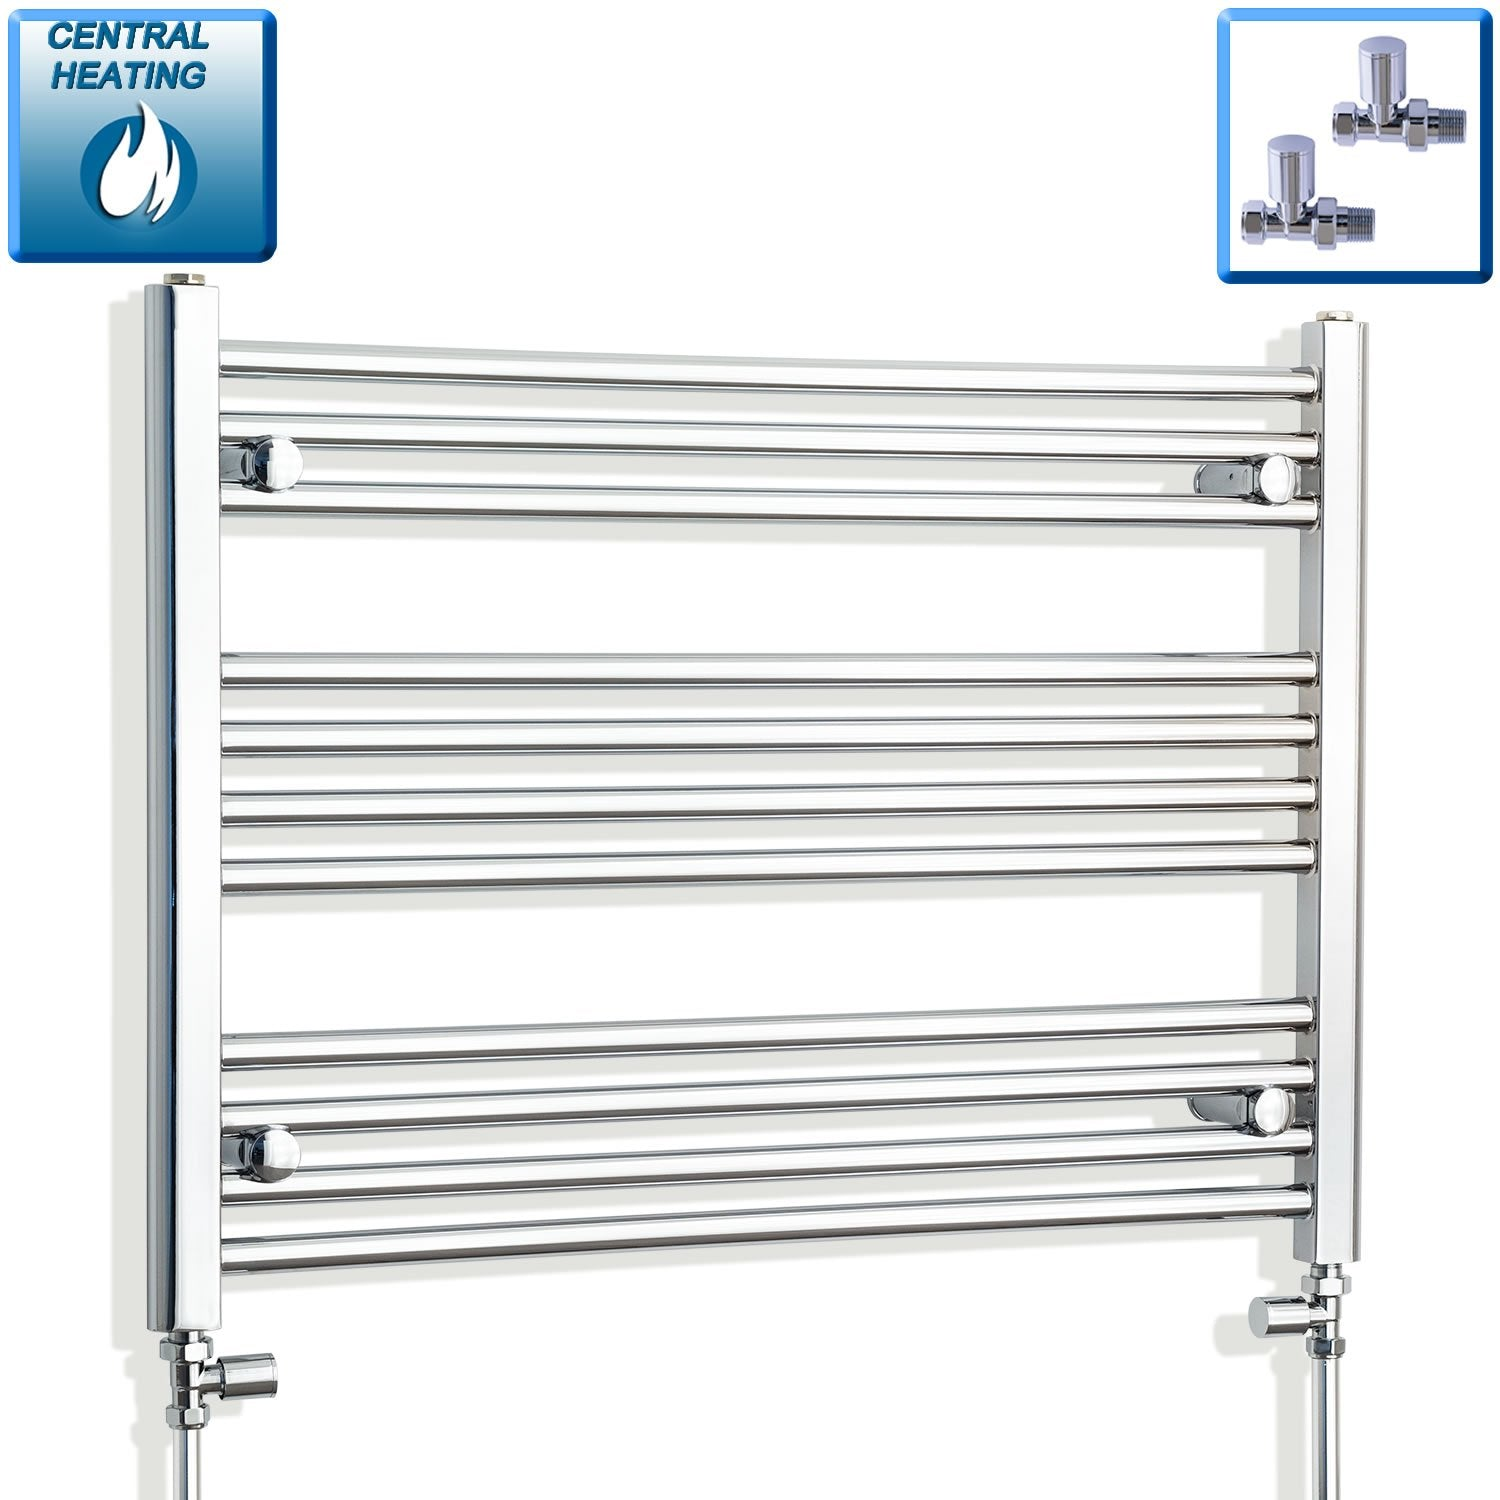 750mm Wide 600mm High Flat Chrome Heated Towel Rail Radiator HTR,With Straight Valve